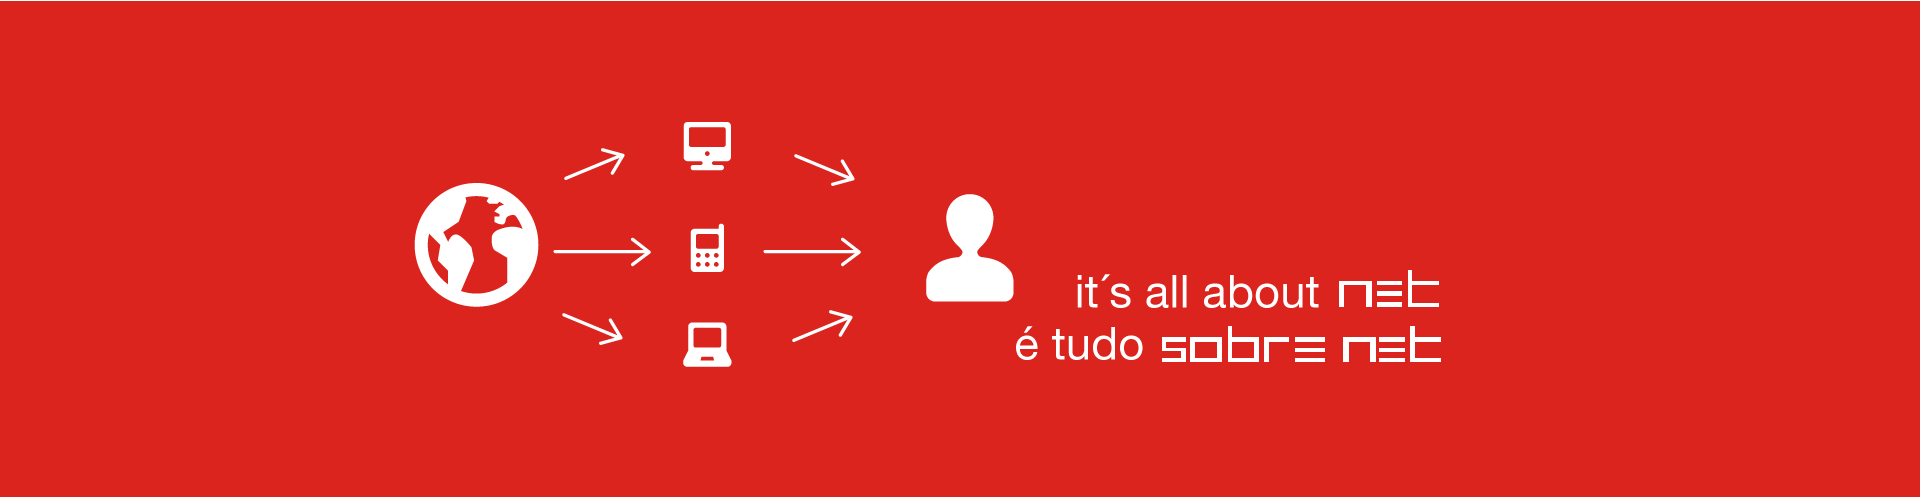 It´s all about net. É tudo sobre net.